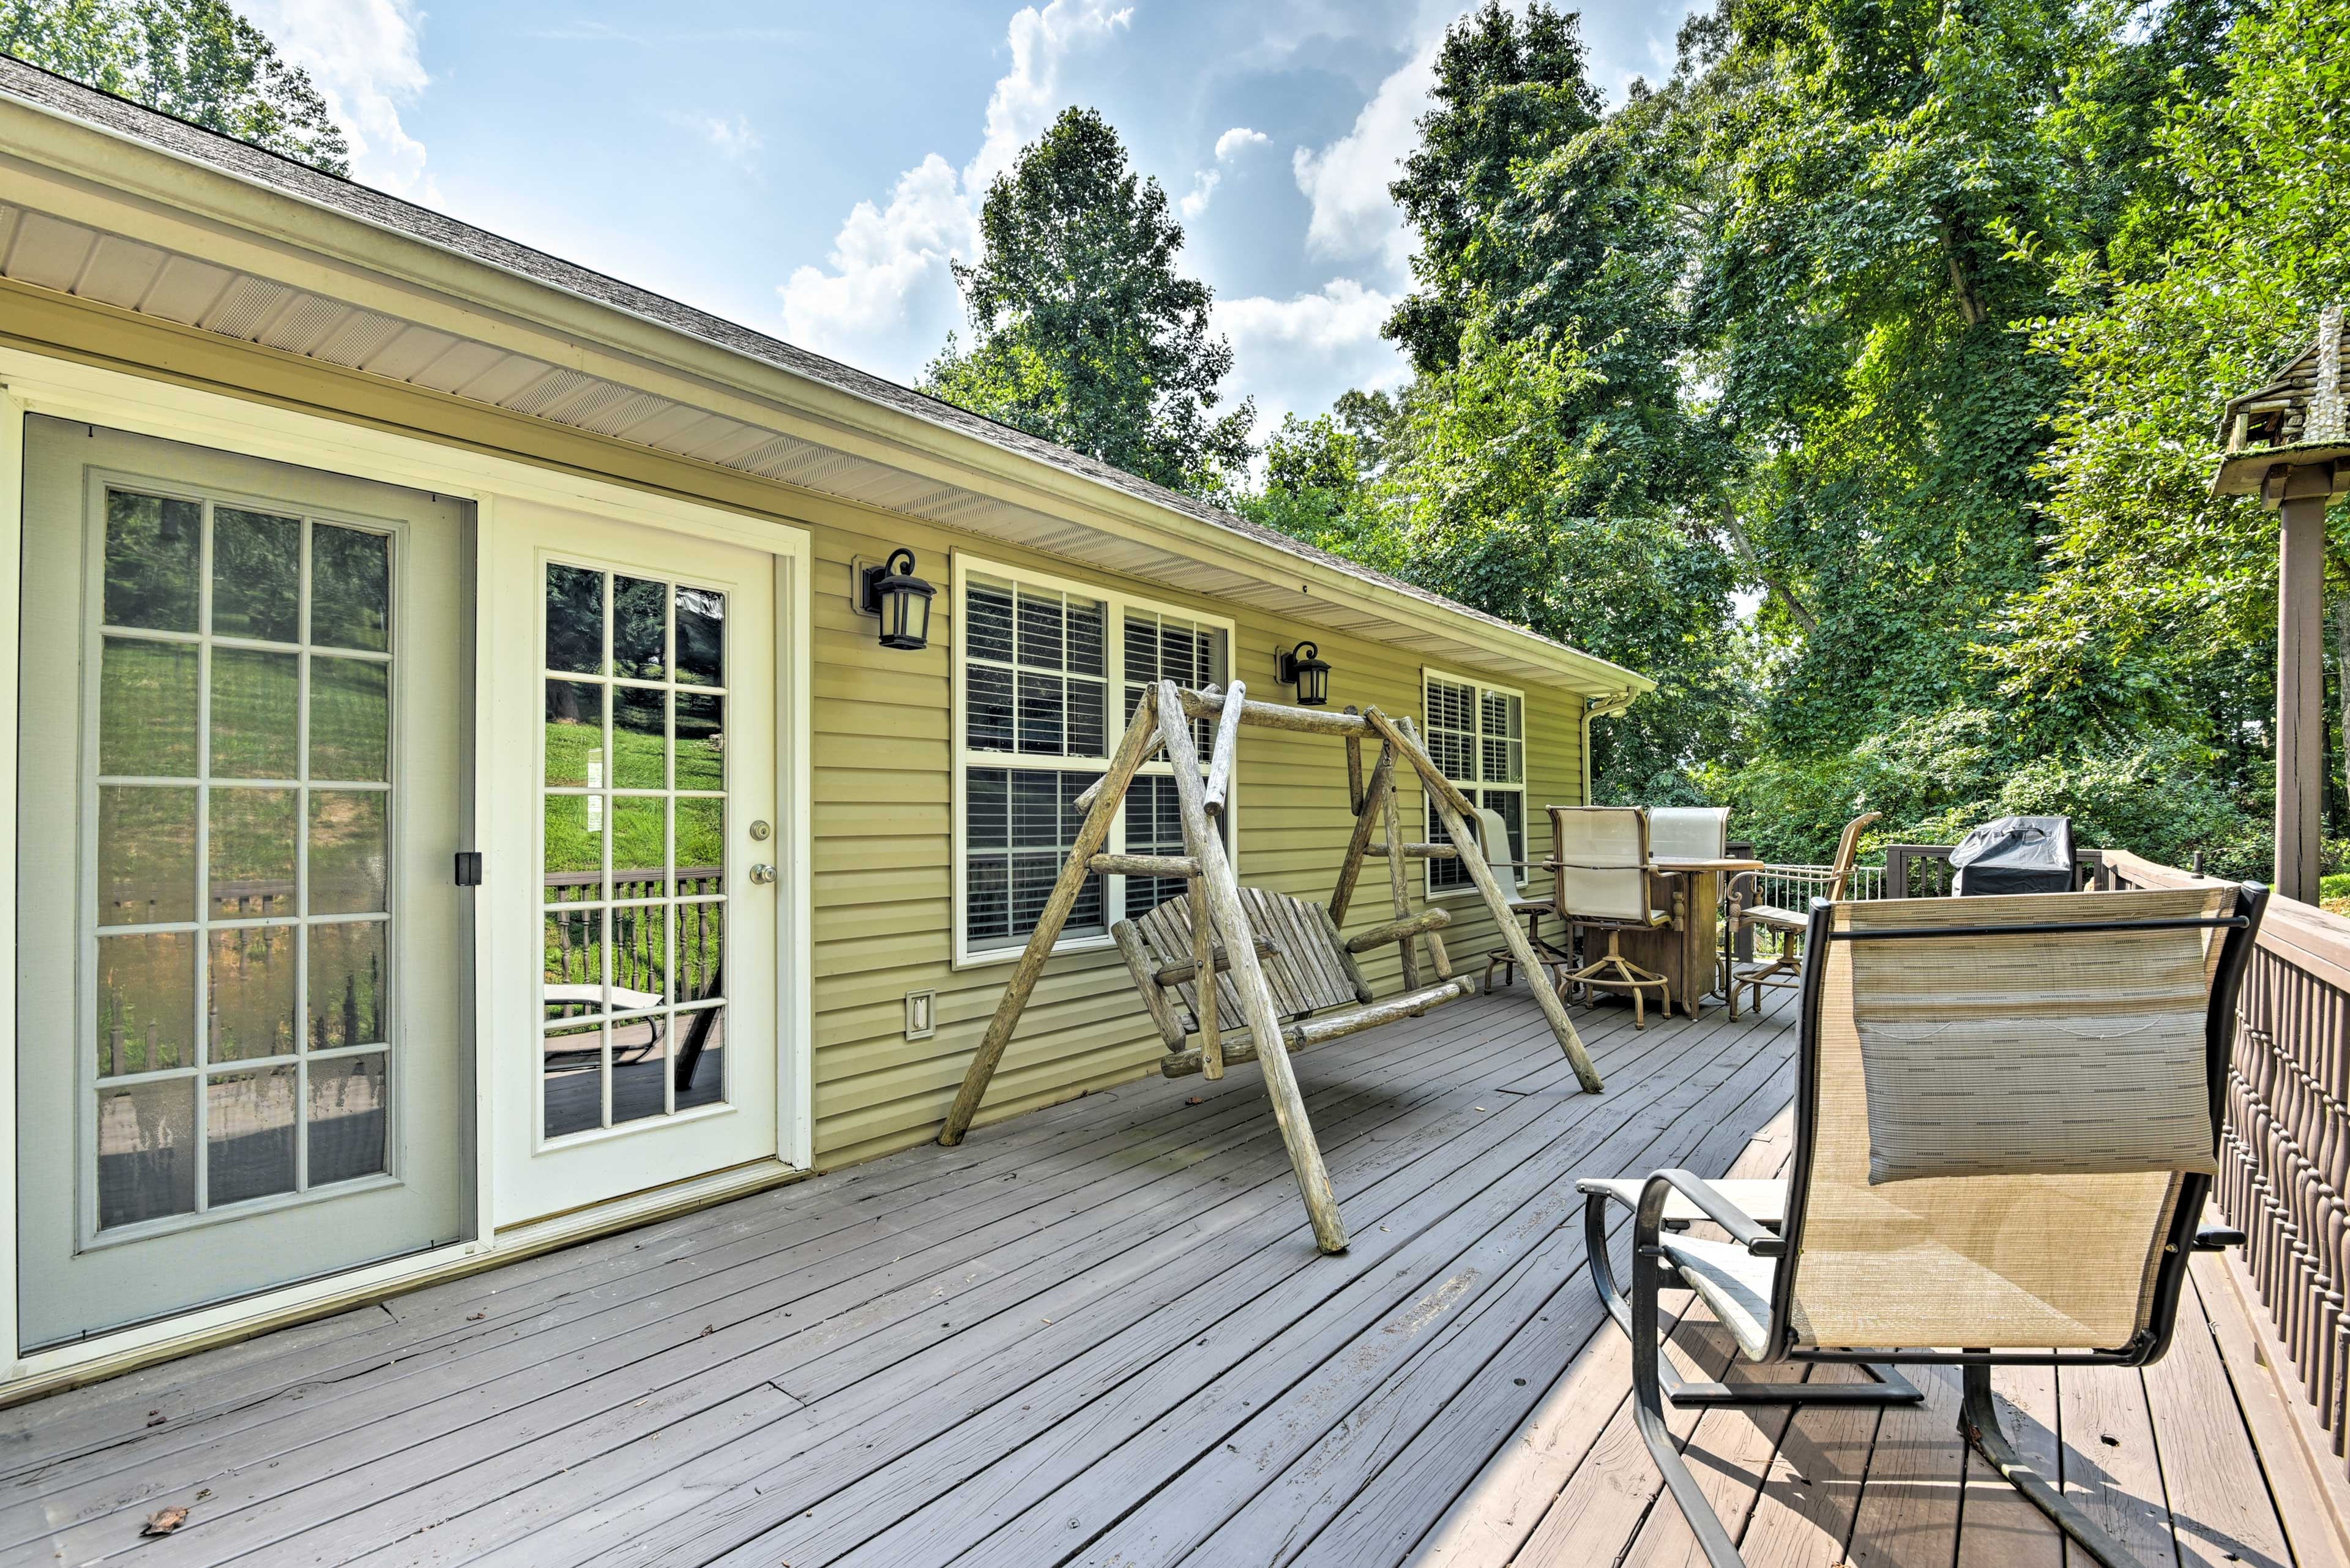 Soak up the sun on the large deck.